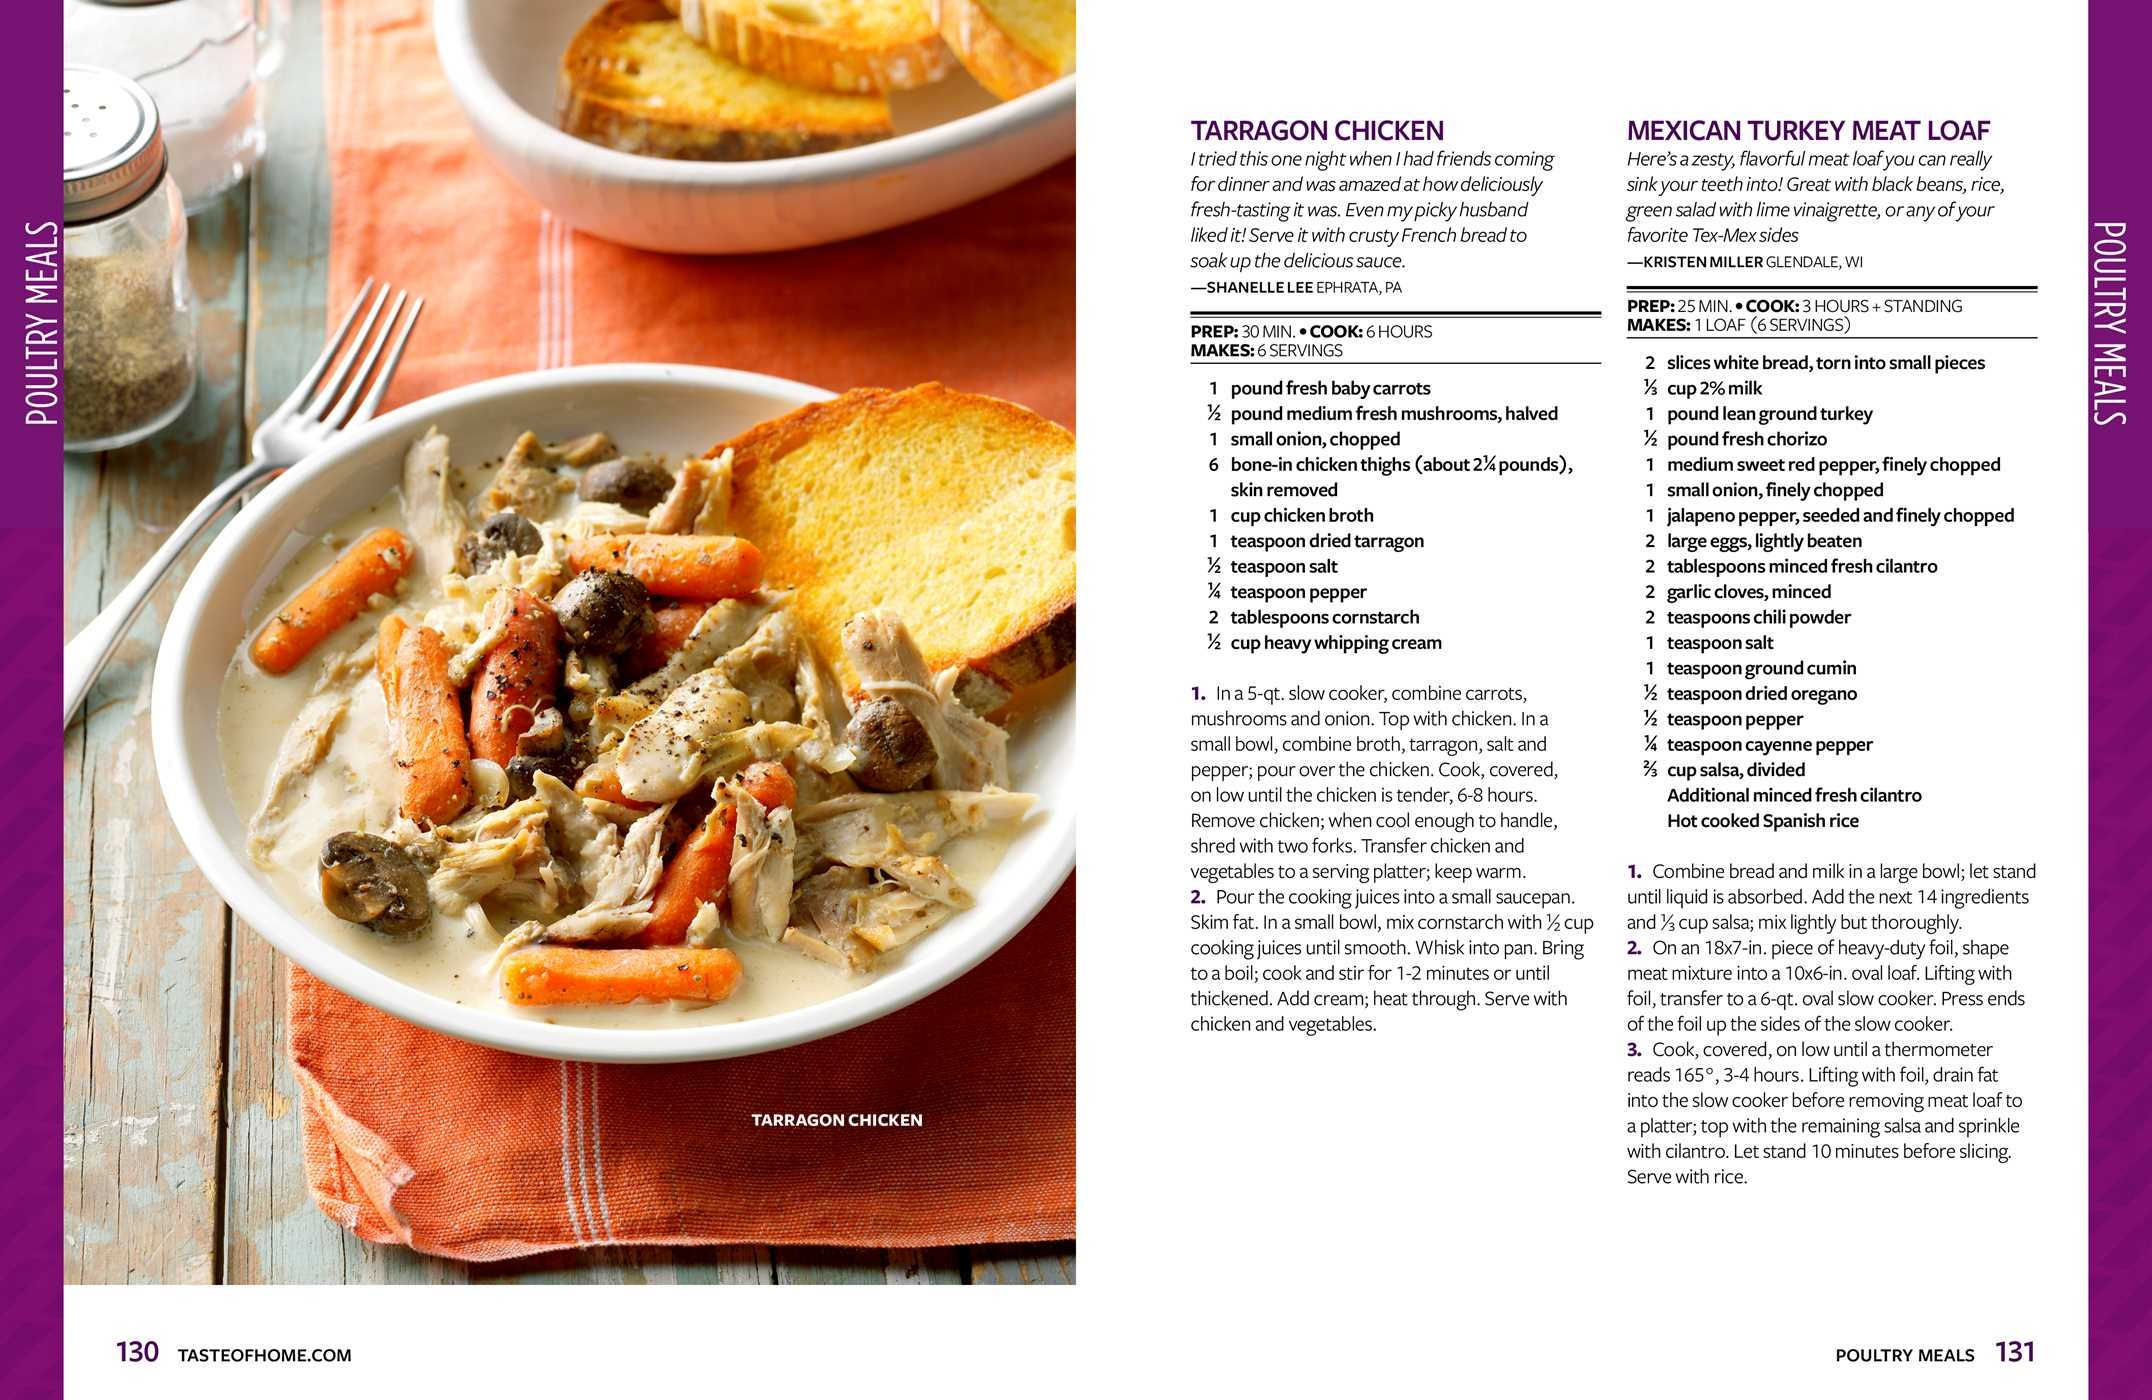 Taste of home slow cooker 3e 9781617656842.in07